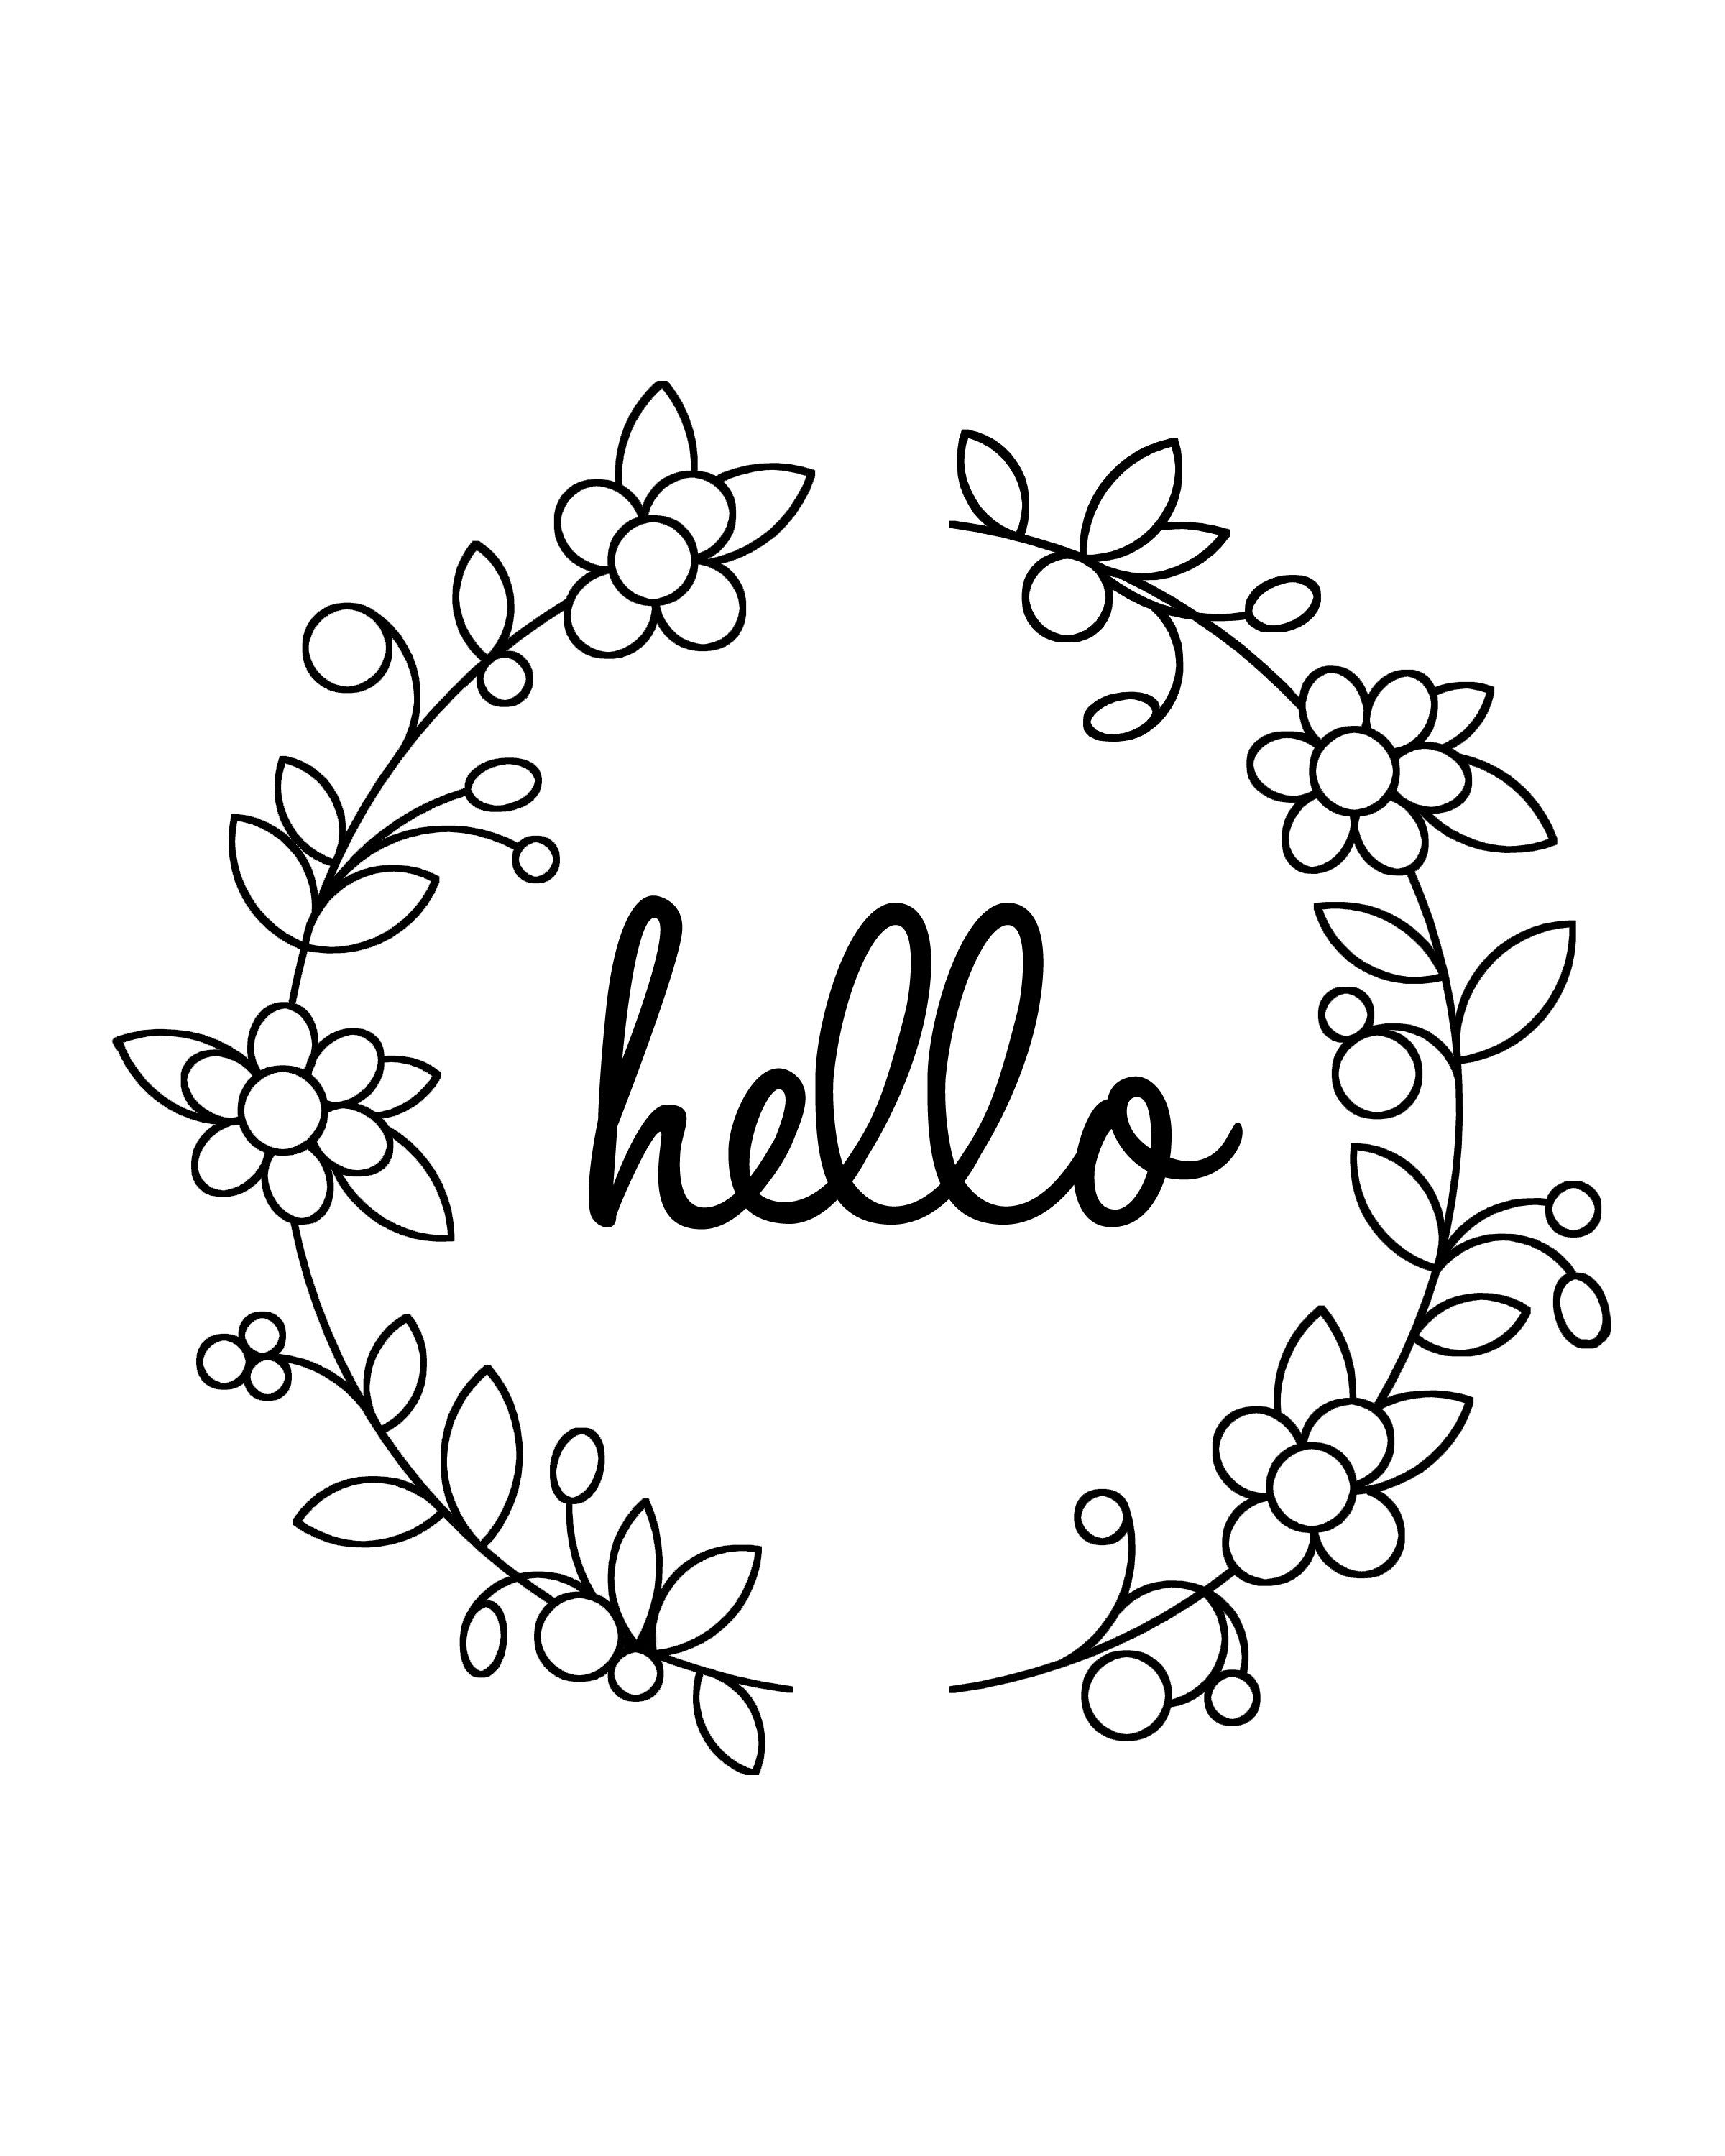 Printable Art Hello With Doodle Wreath Find Out More Http Www Arrowhi Embroidery Patterns Free Hand Embroidery Patterns Free Embroidery Flowers Pattern